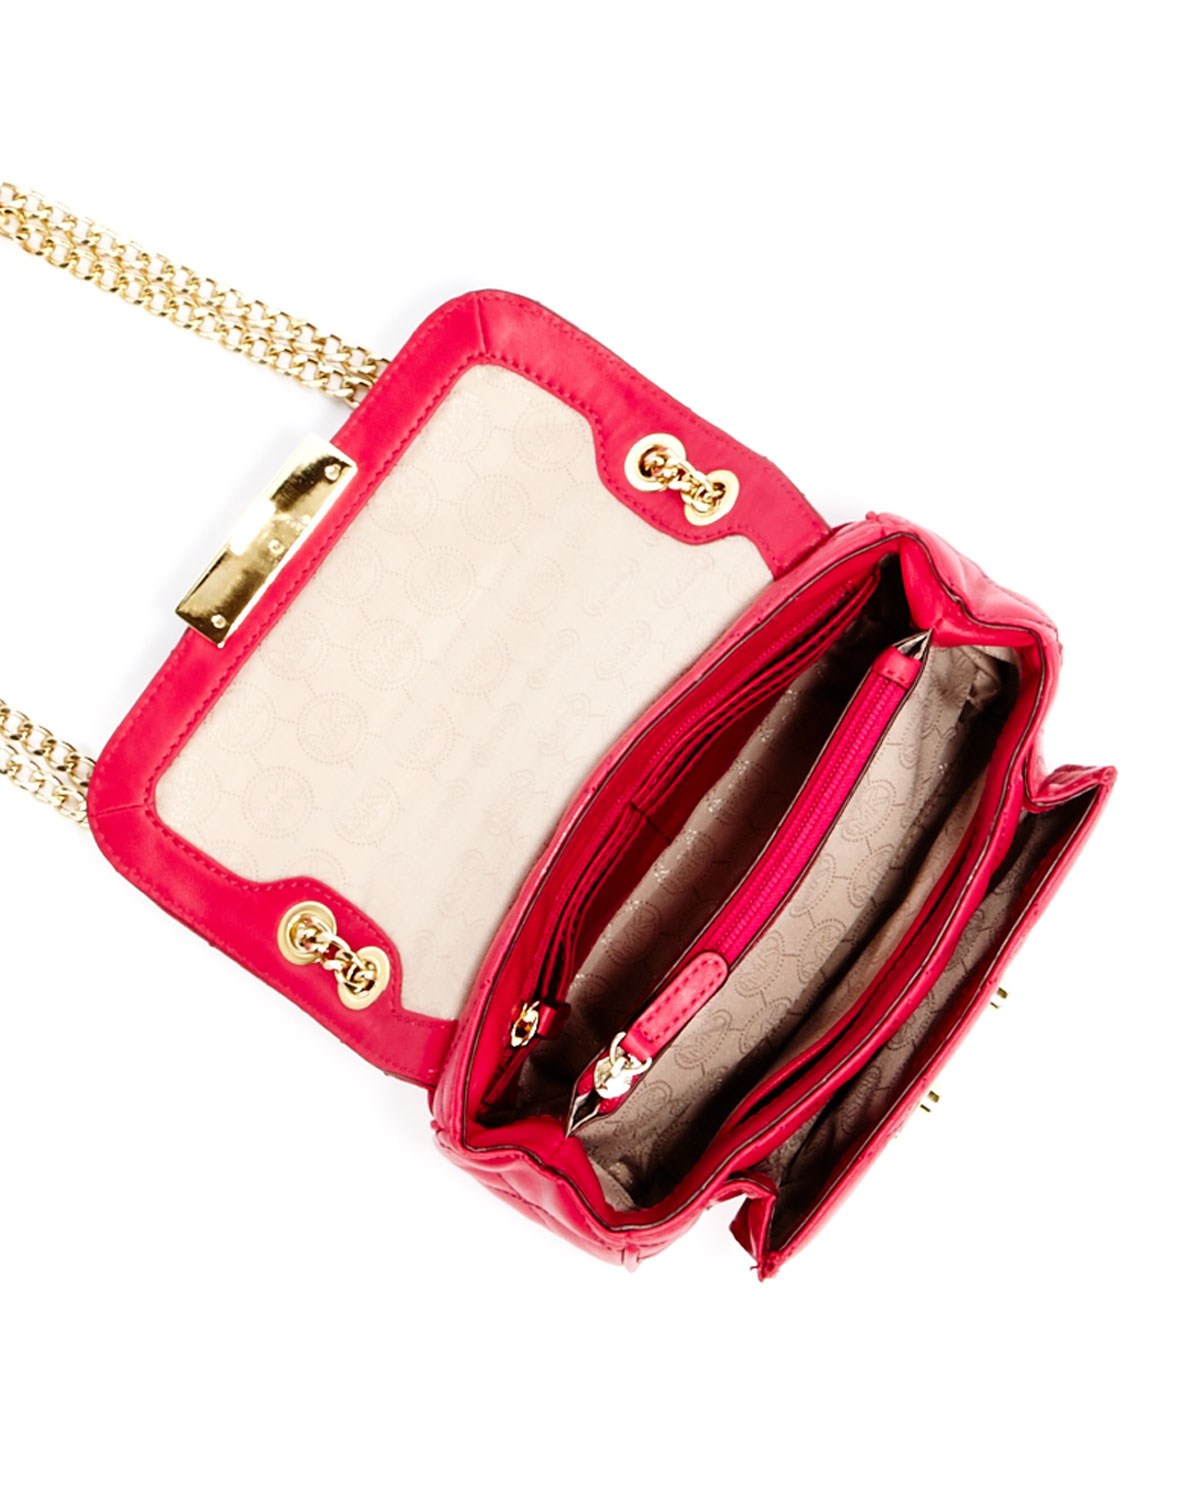 3079d4ff5d Michael Kors Red Quilted Purse - Best Purse Image Ccdbb.Org